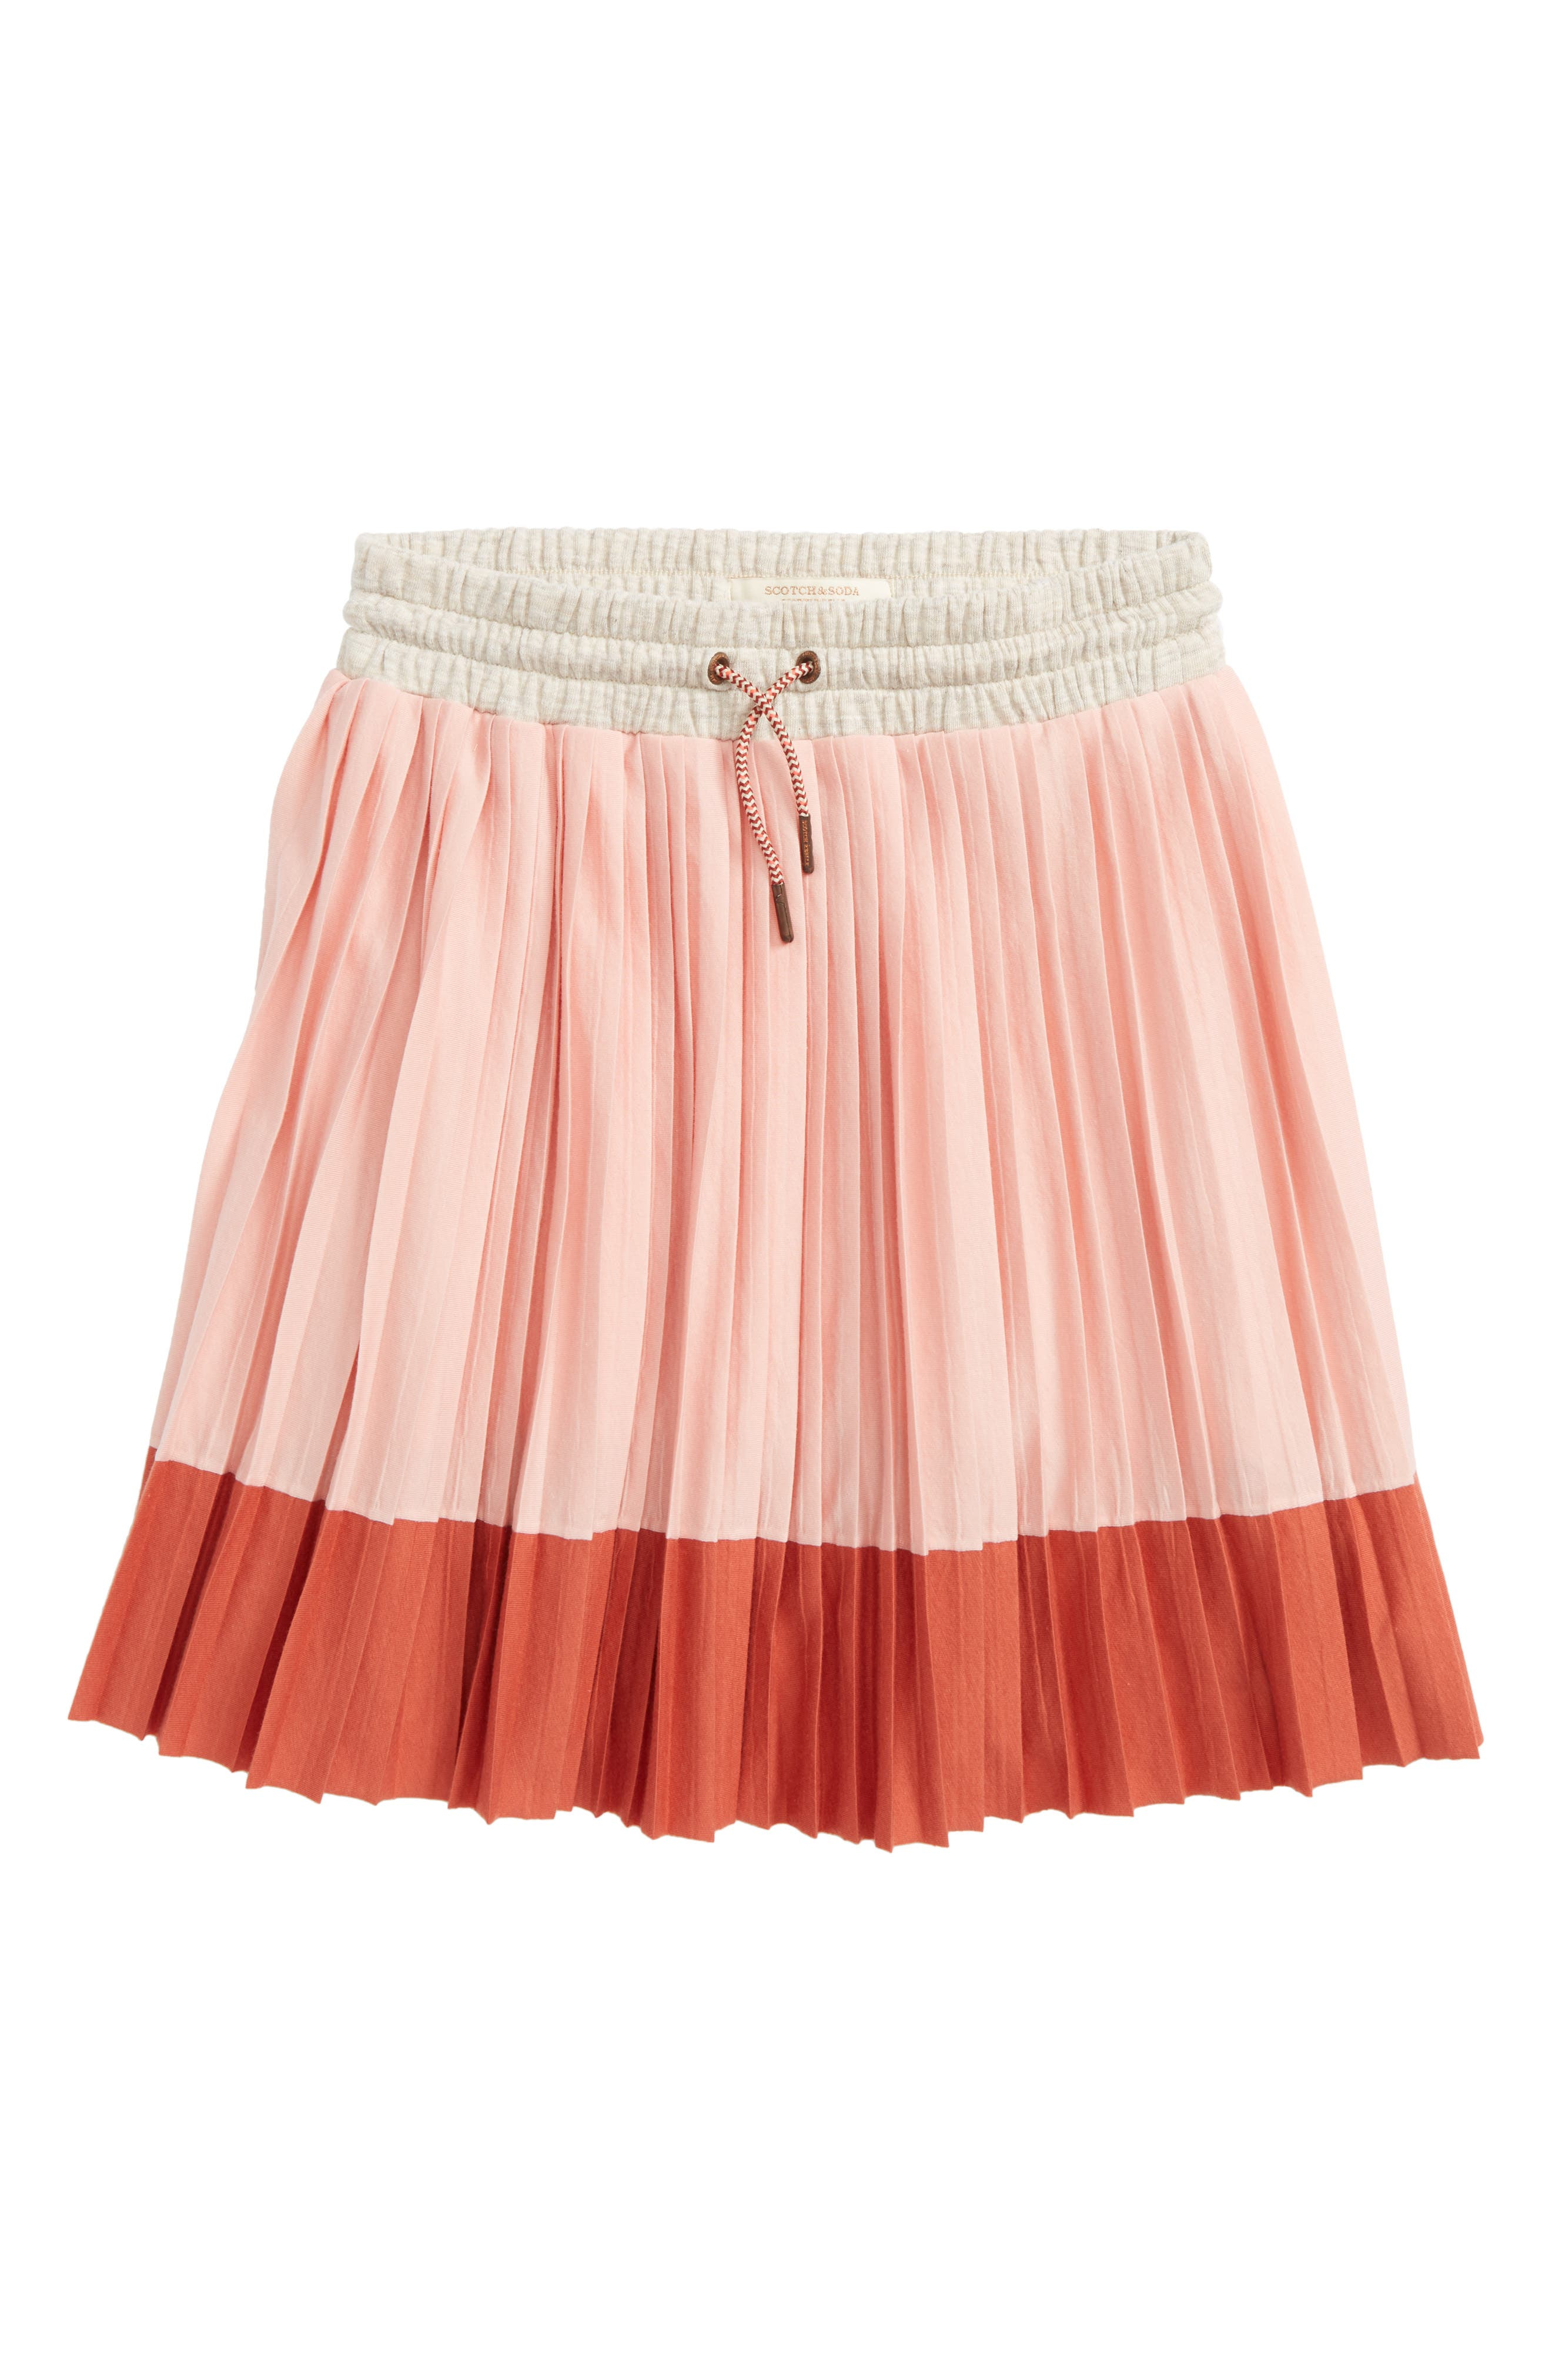 Scotch R'Belle Pleated Jersey Skirt,                             Main thumbnail 1, color,                             650